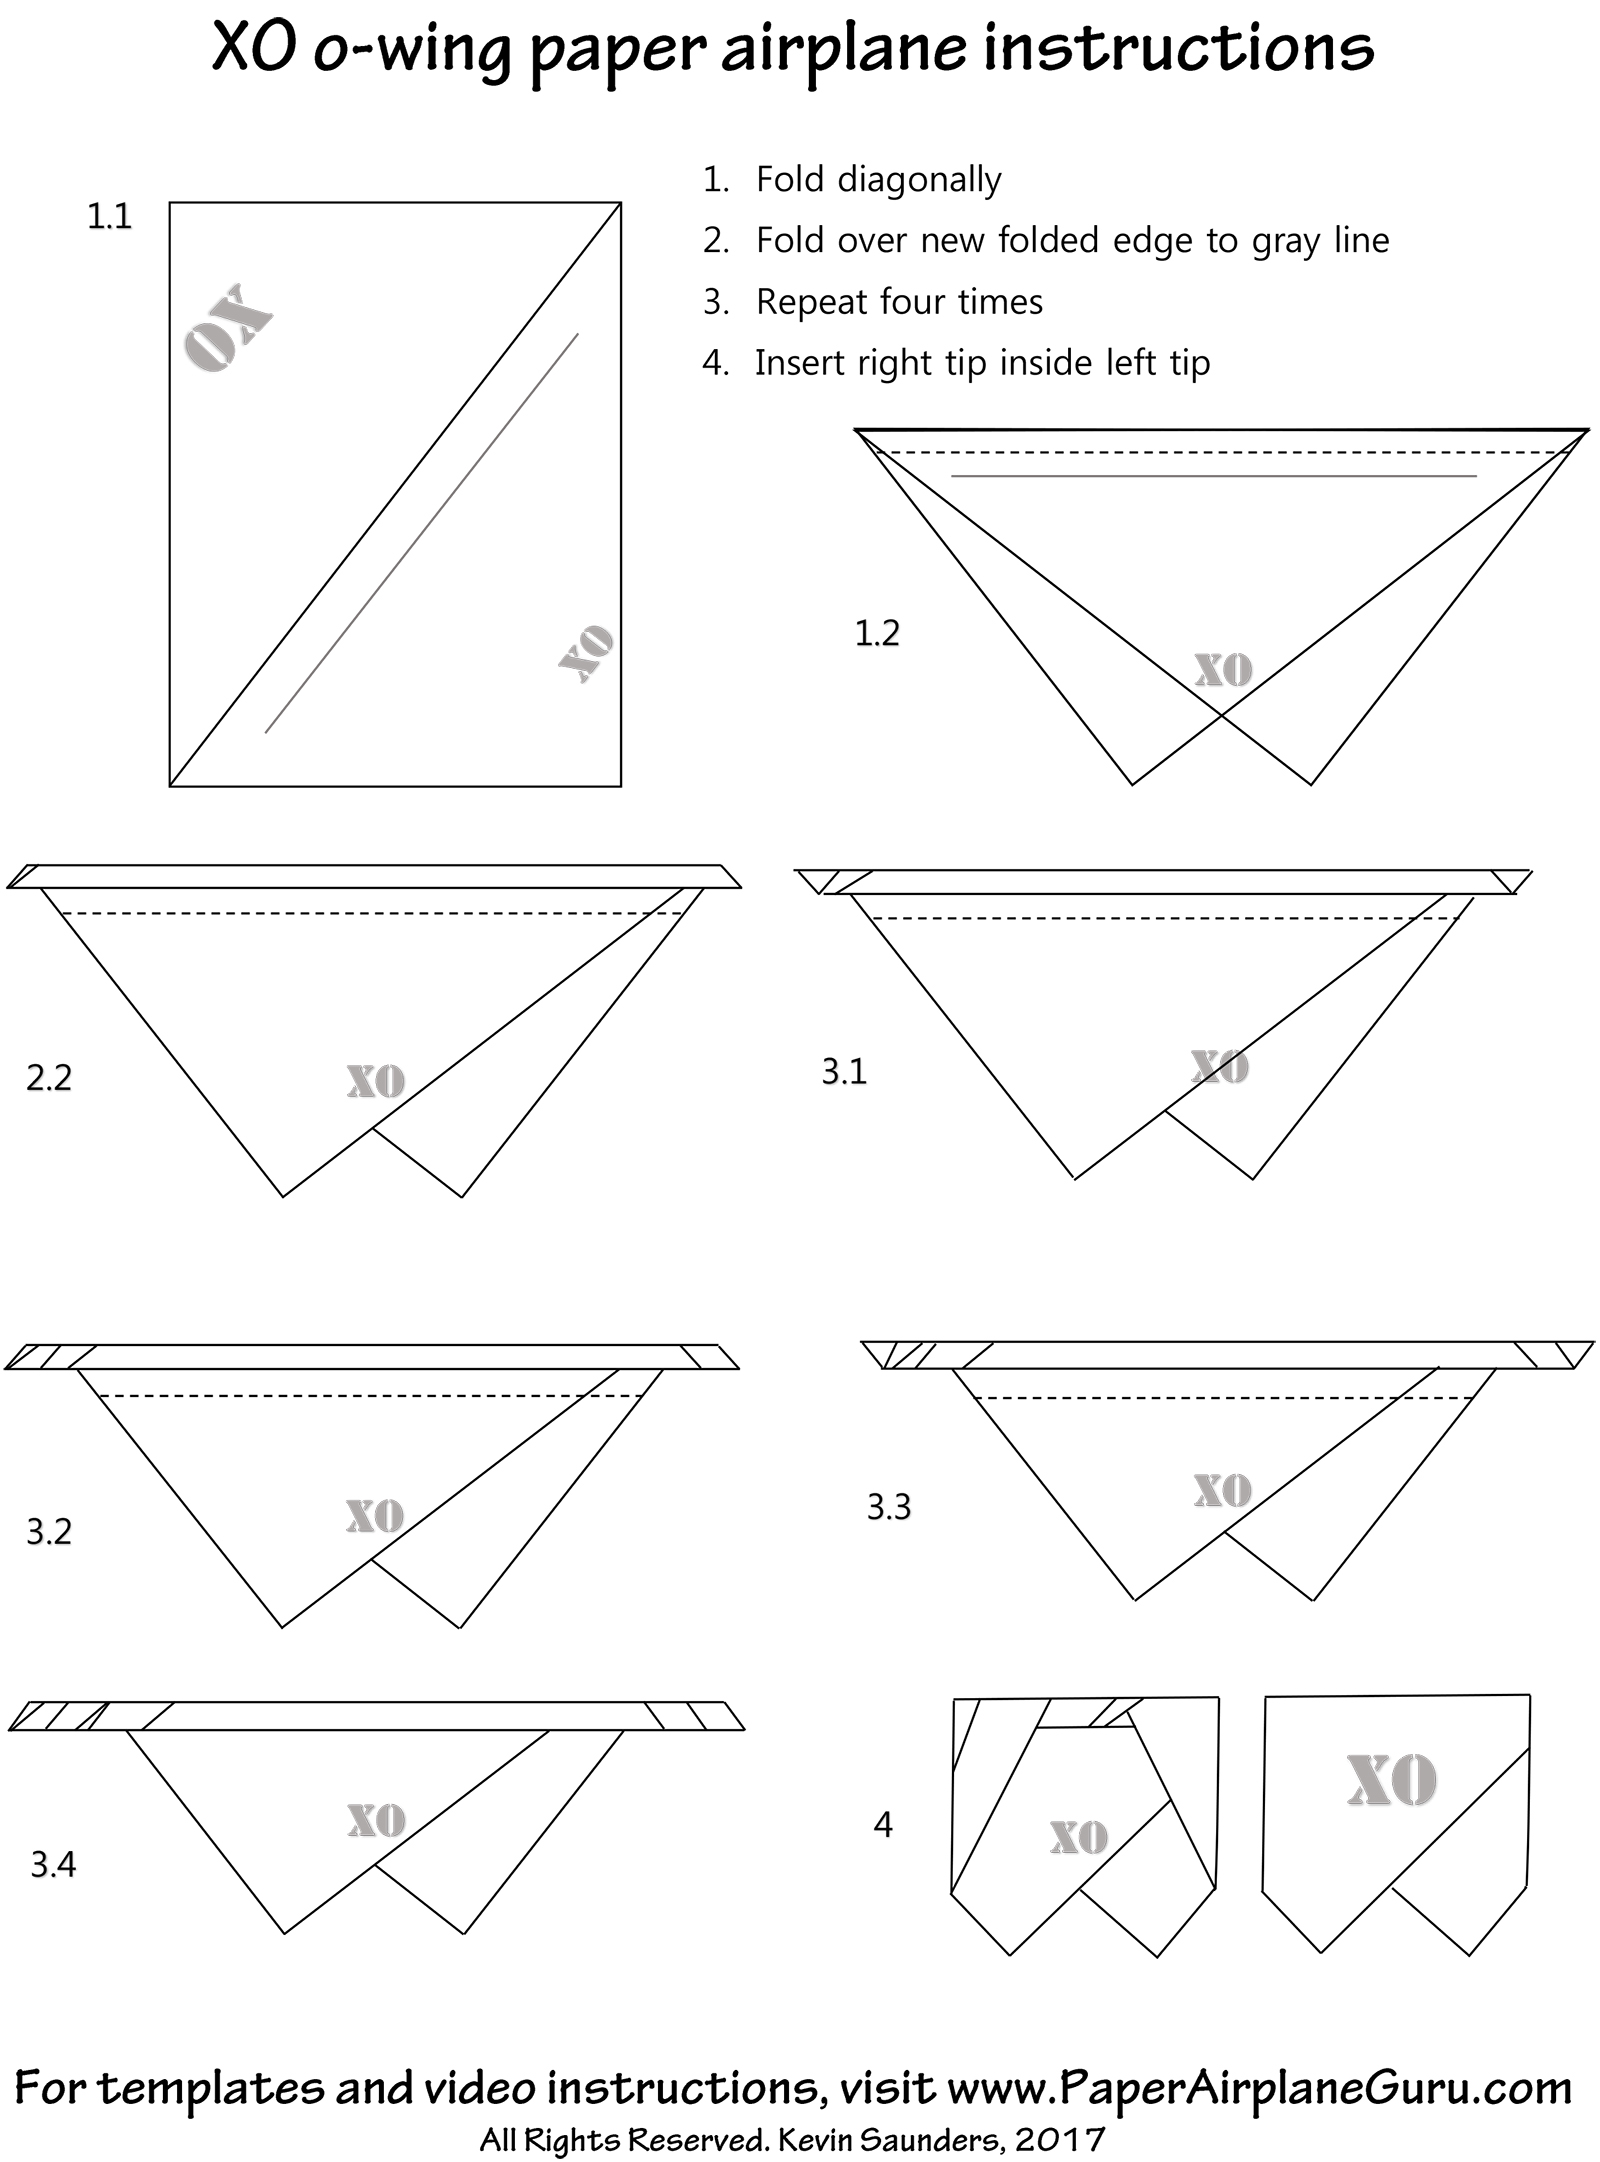 xo paper airplane design instructions and templates